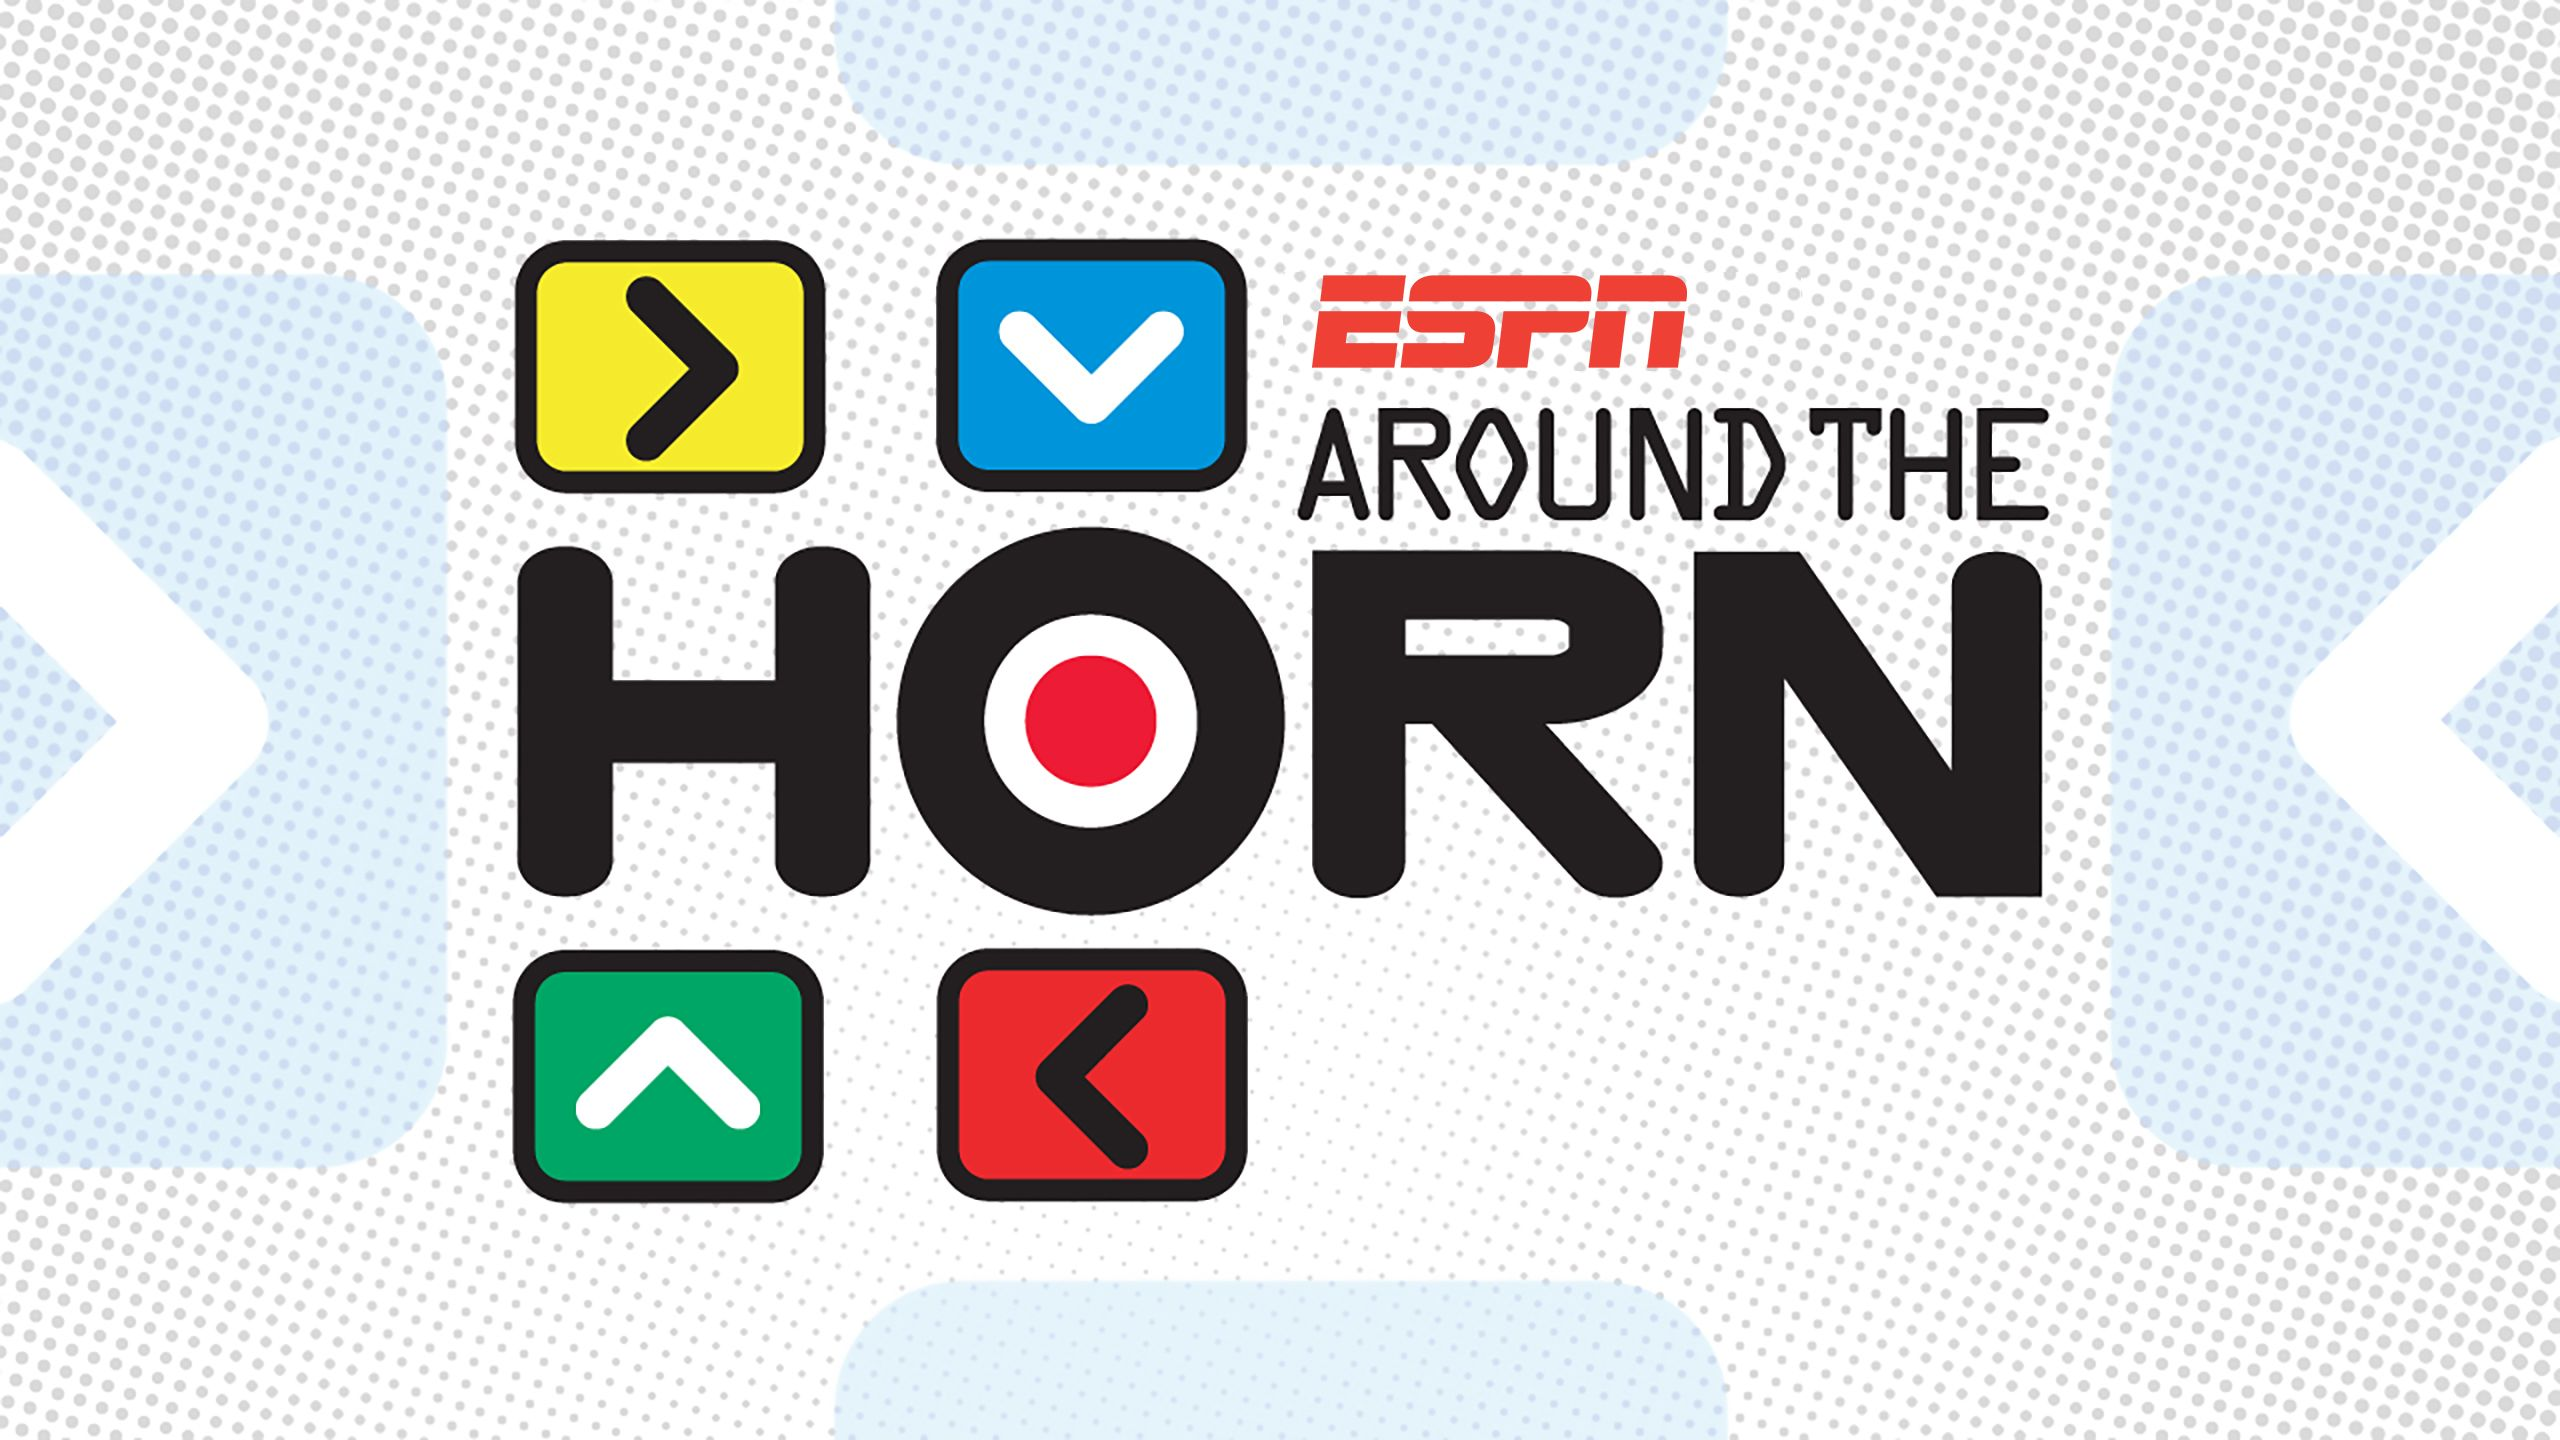 Mon, 2/19 - Around The Horn